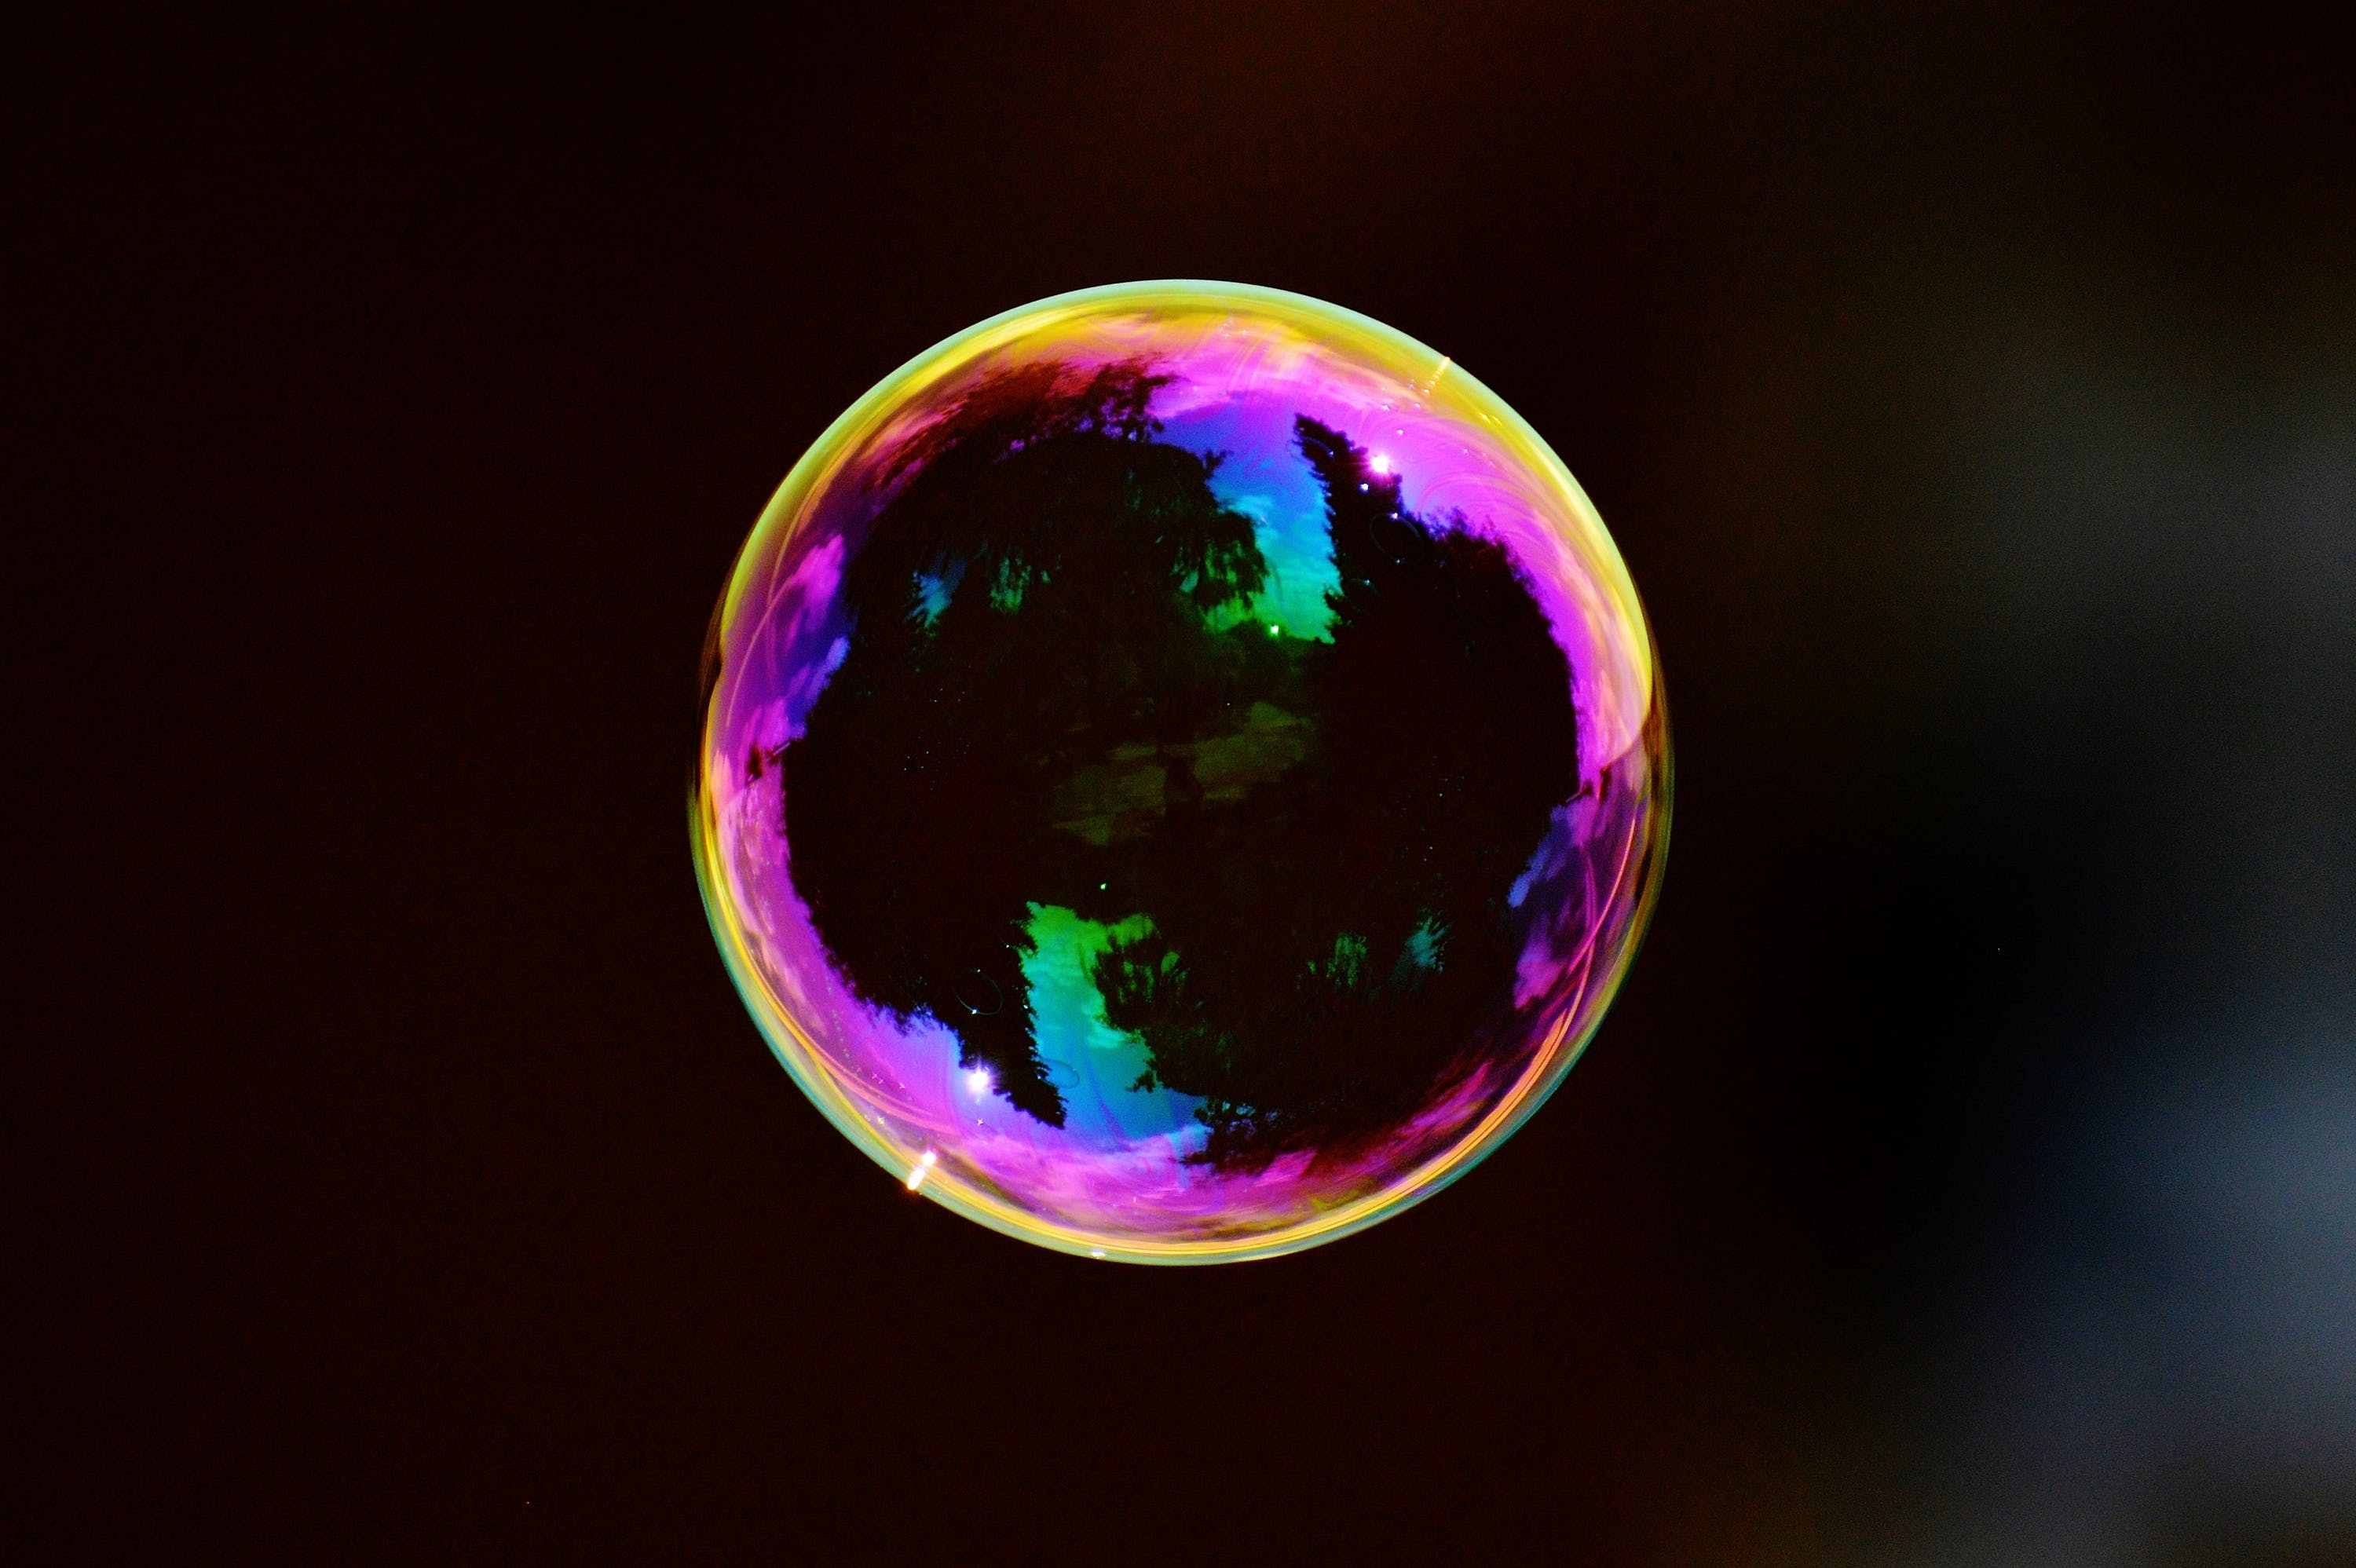 ball, black, bubble